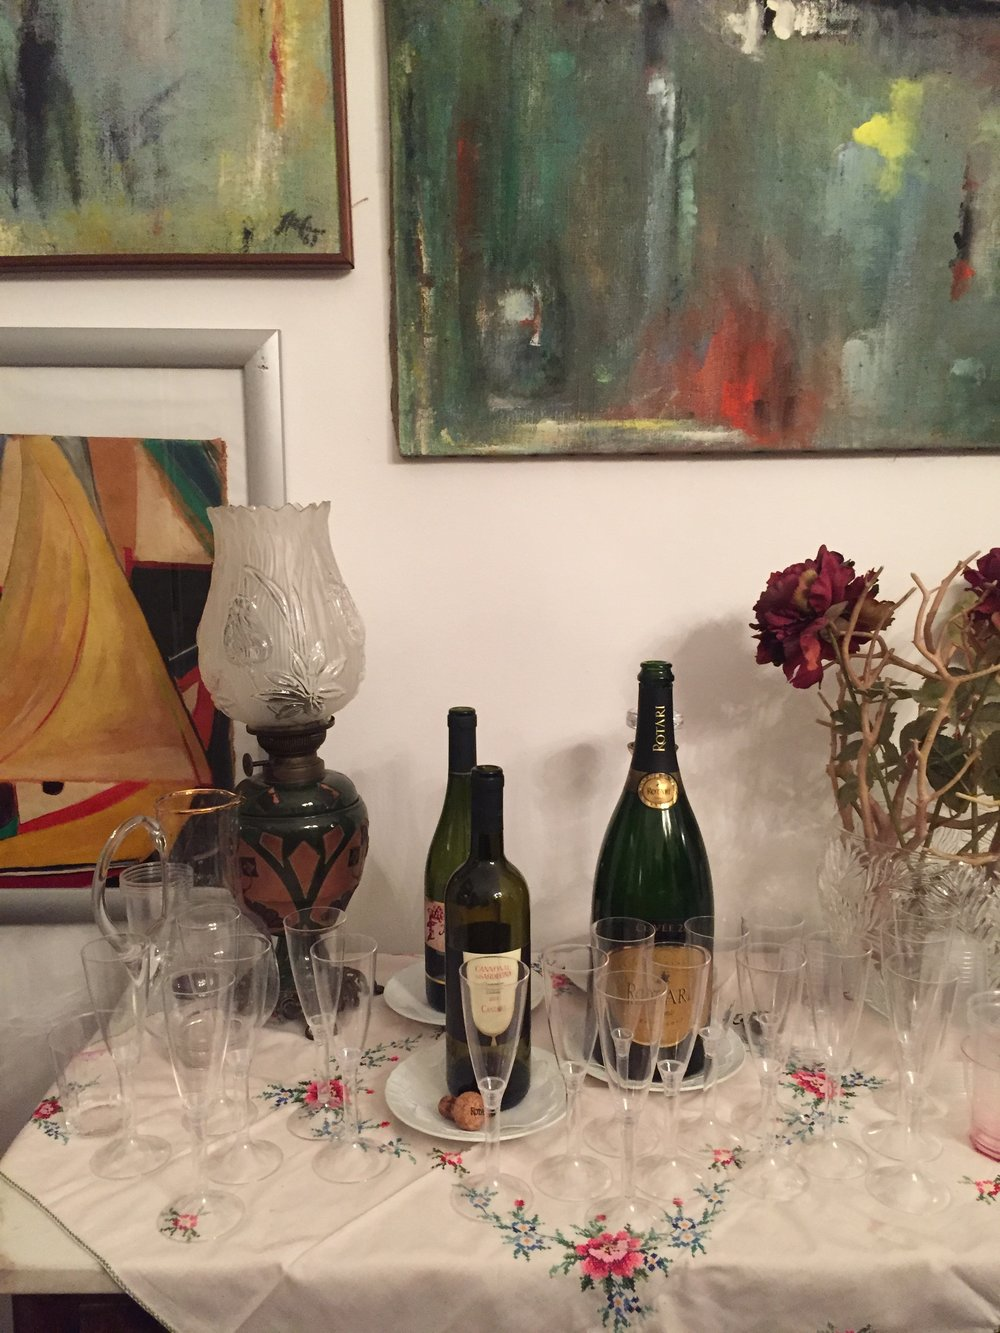 Prosecco and local wine in a typical Sicilian home PICTURE BY TRAVEL ITALIAN STYLE